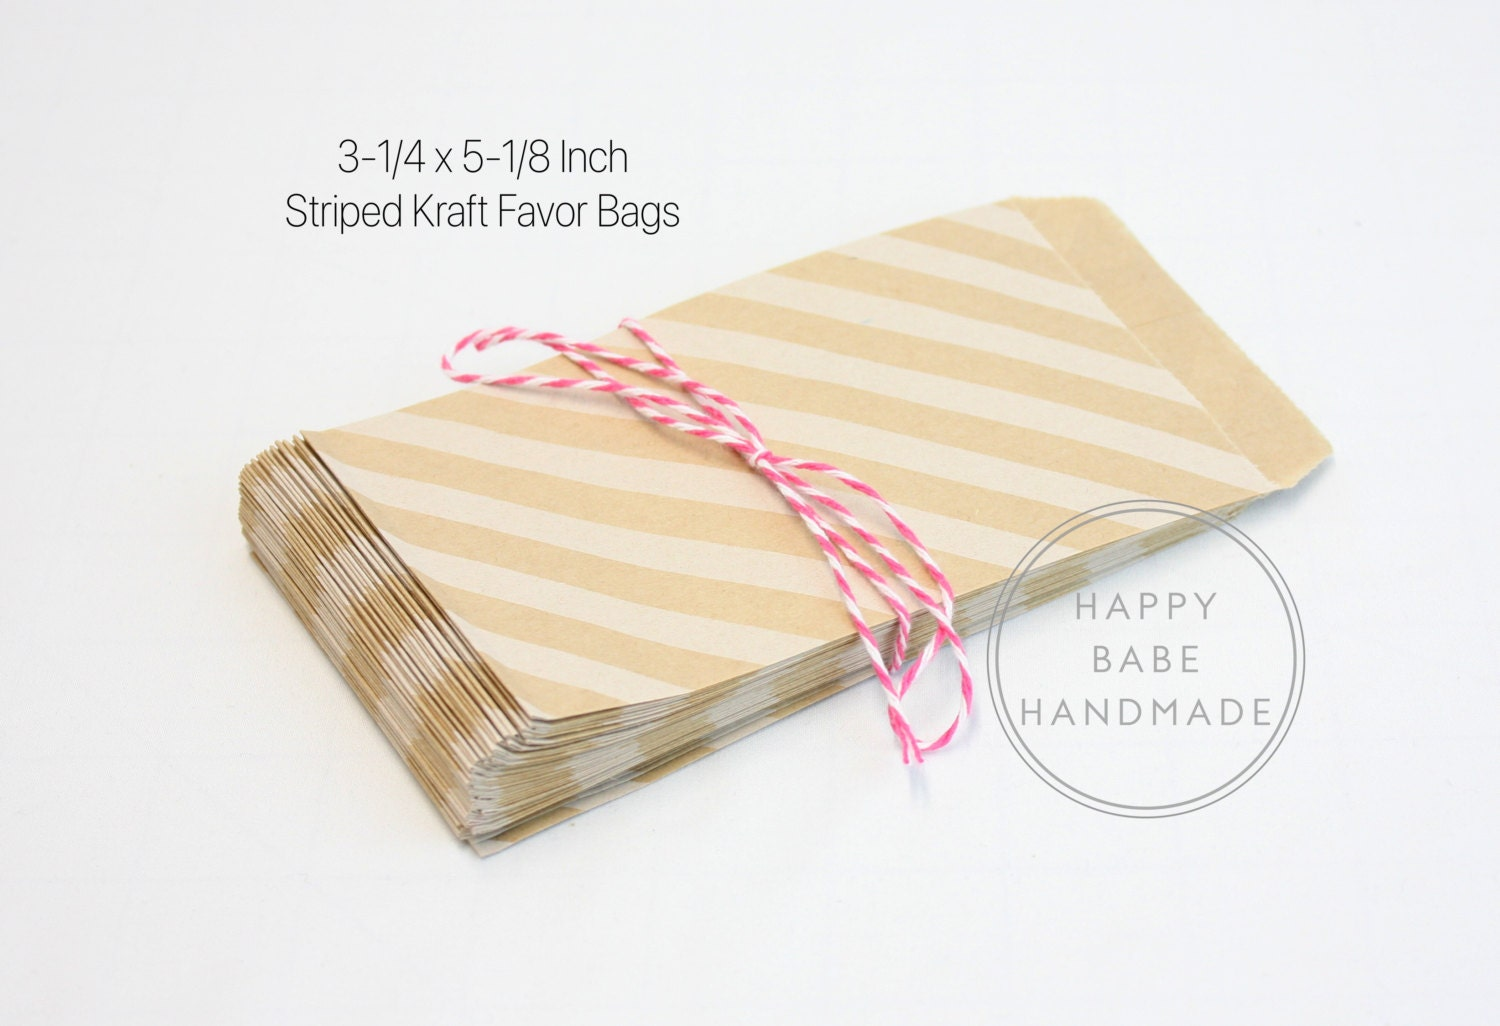 20 Striped Paper Bags, 3-1/4 x 5-1/8 Inch, Favor Bag, Welcome Bag ...